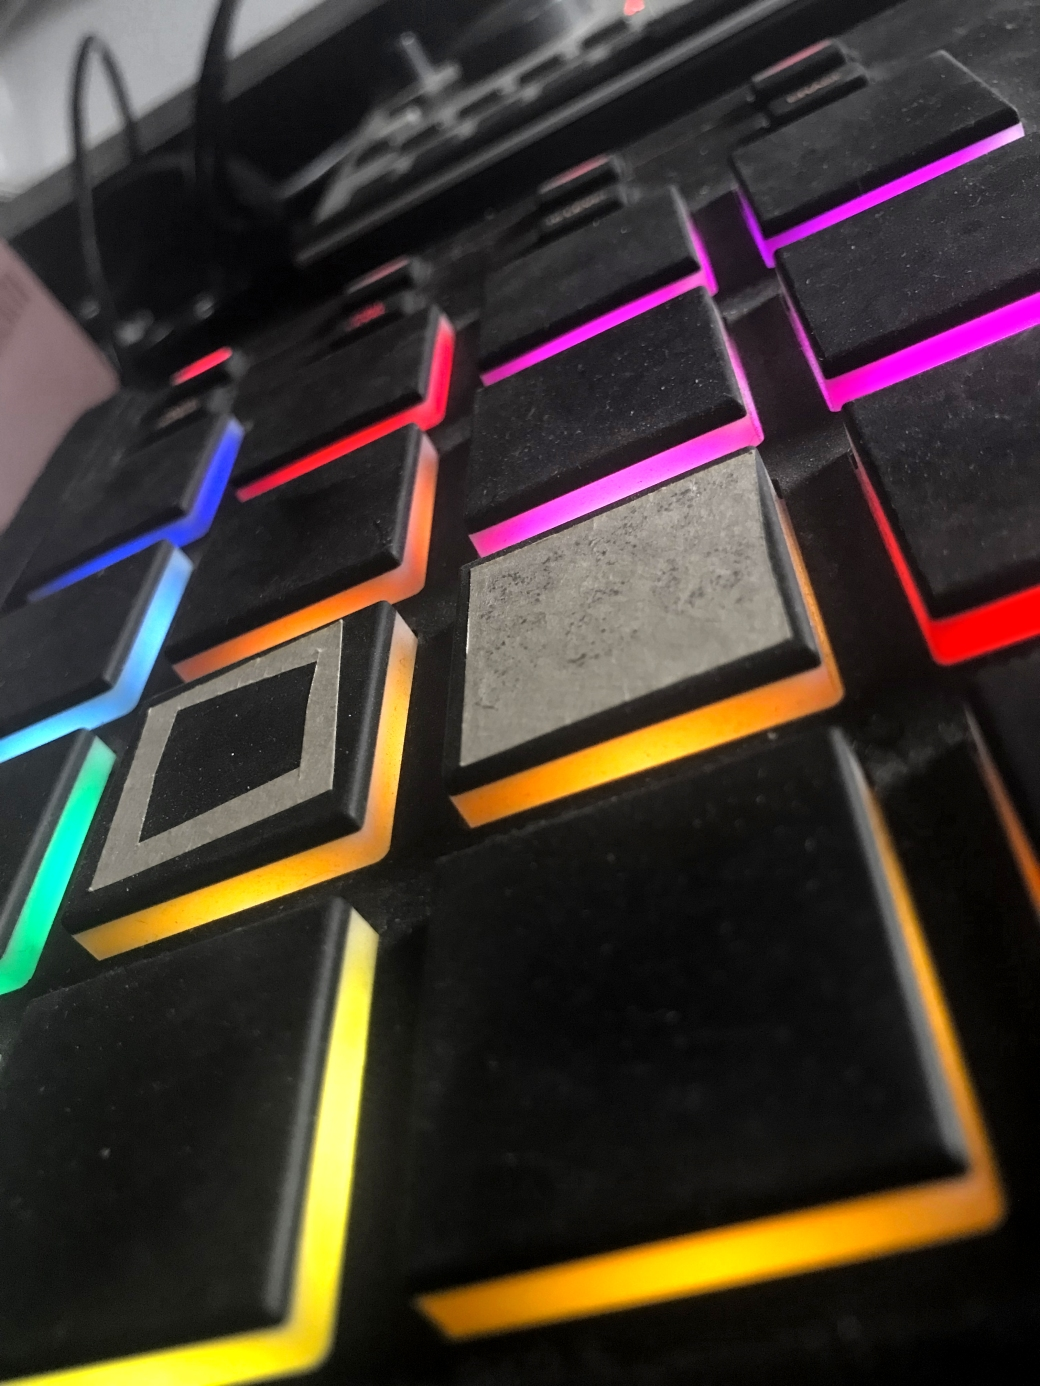 MPC colourful pads